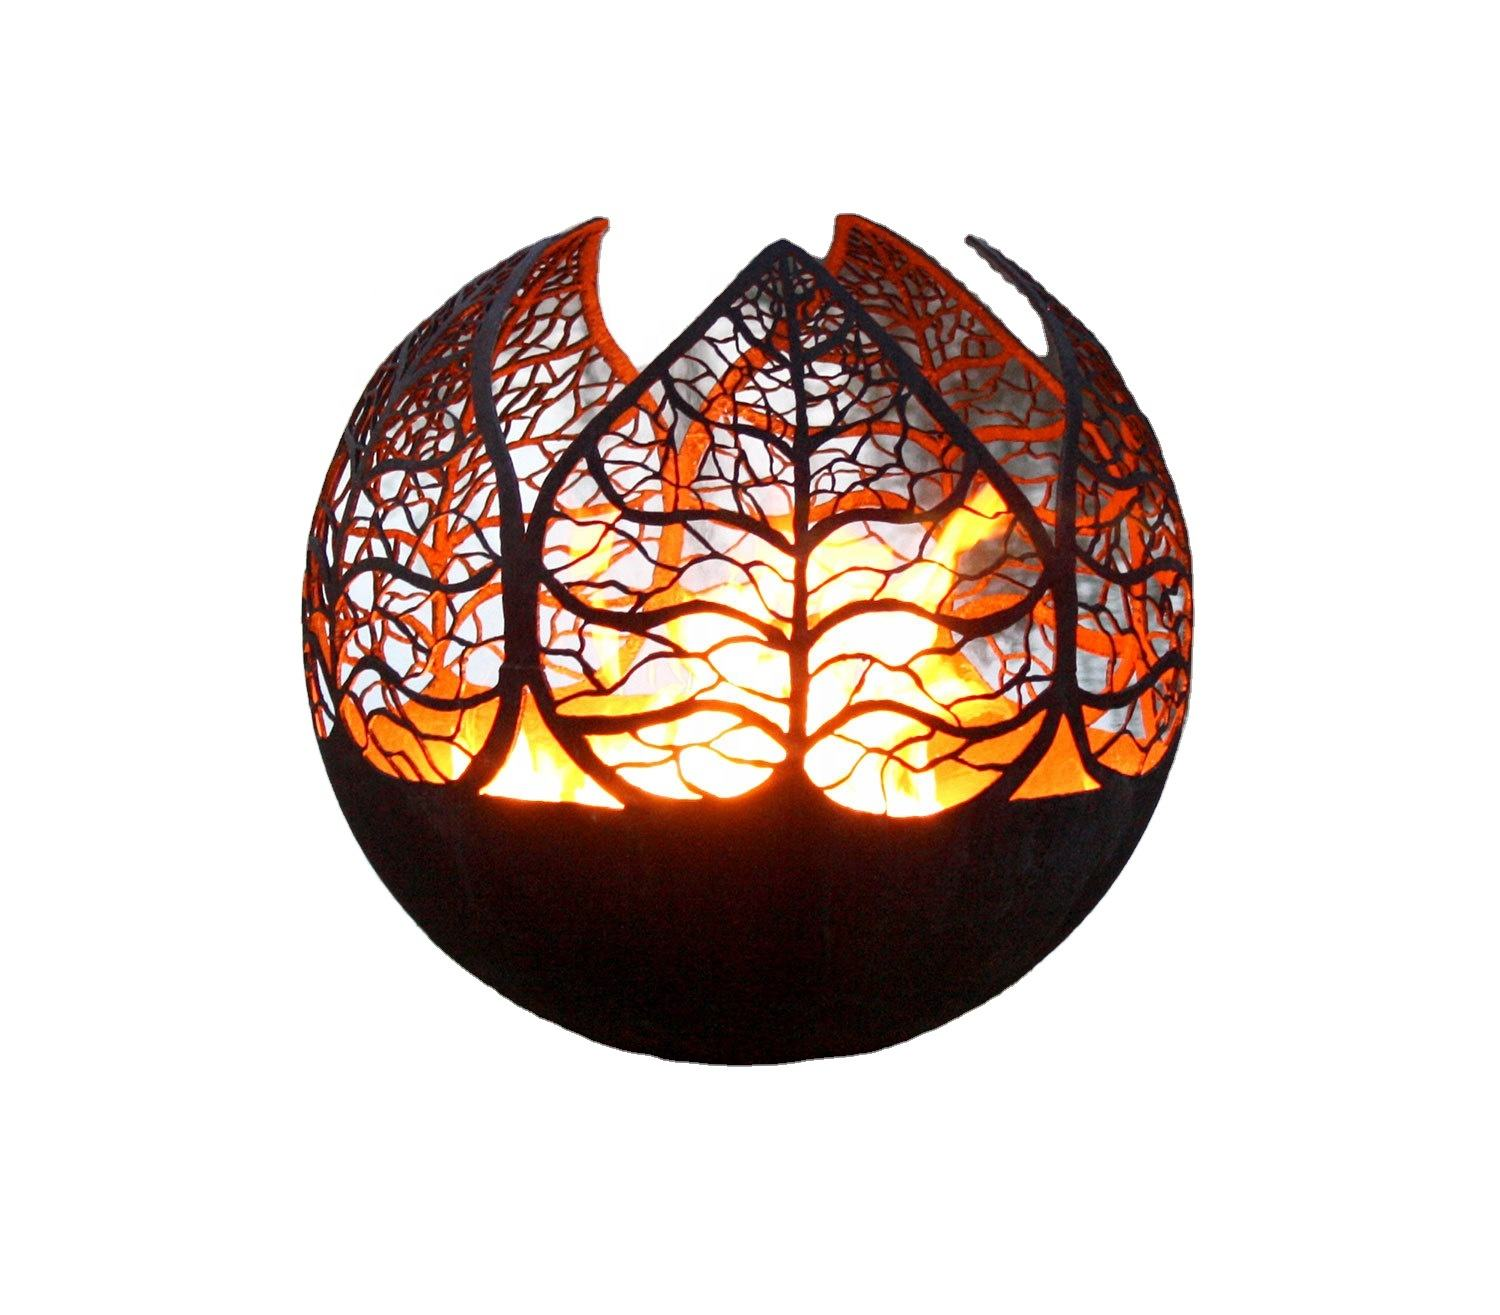 Autaumn leaves 29 inch metal ball fire pit for garden